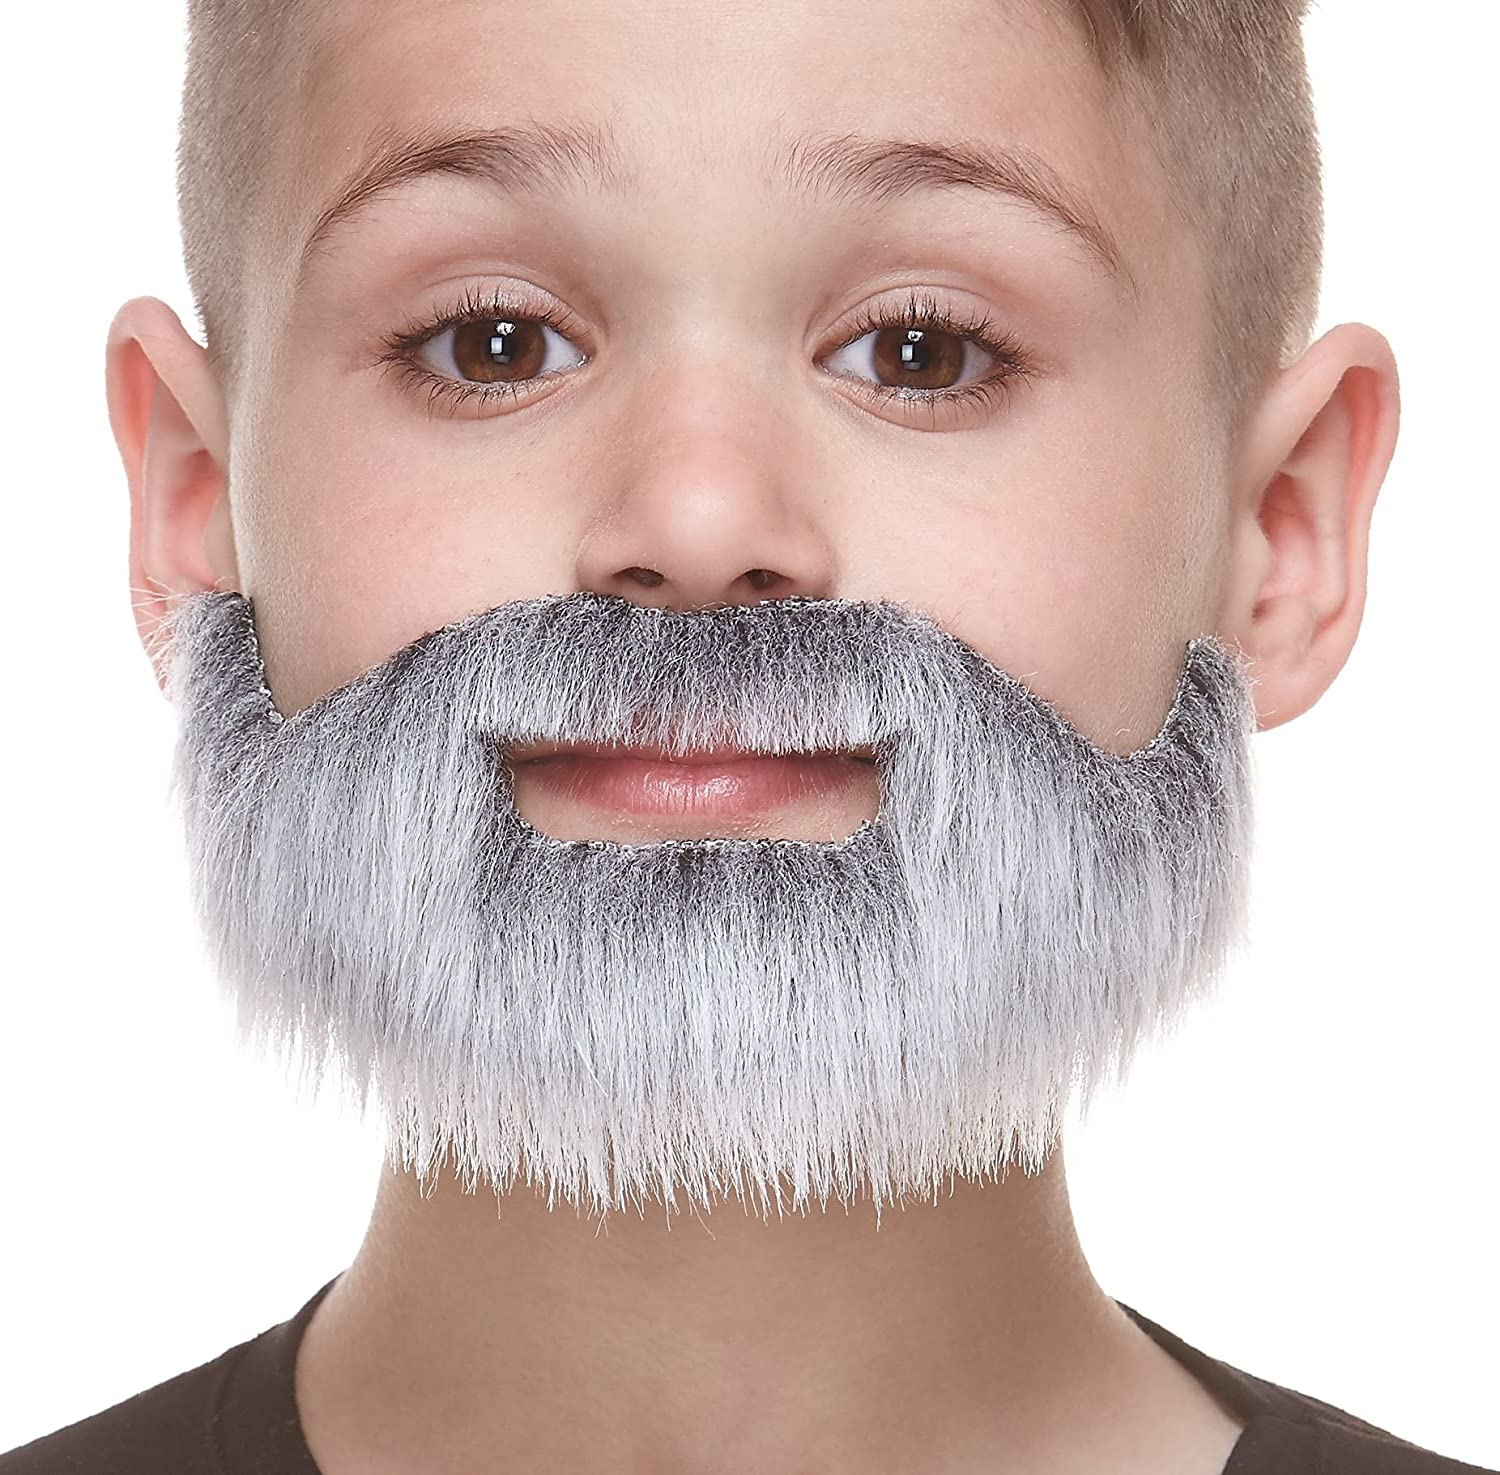 Fancy Dress Fake Beard Halloween Costume Party Facial Hair Moustache Wig Funny